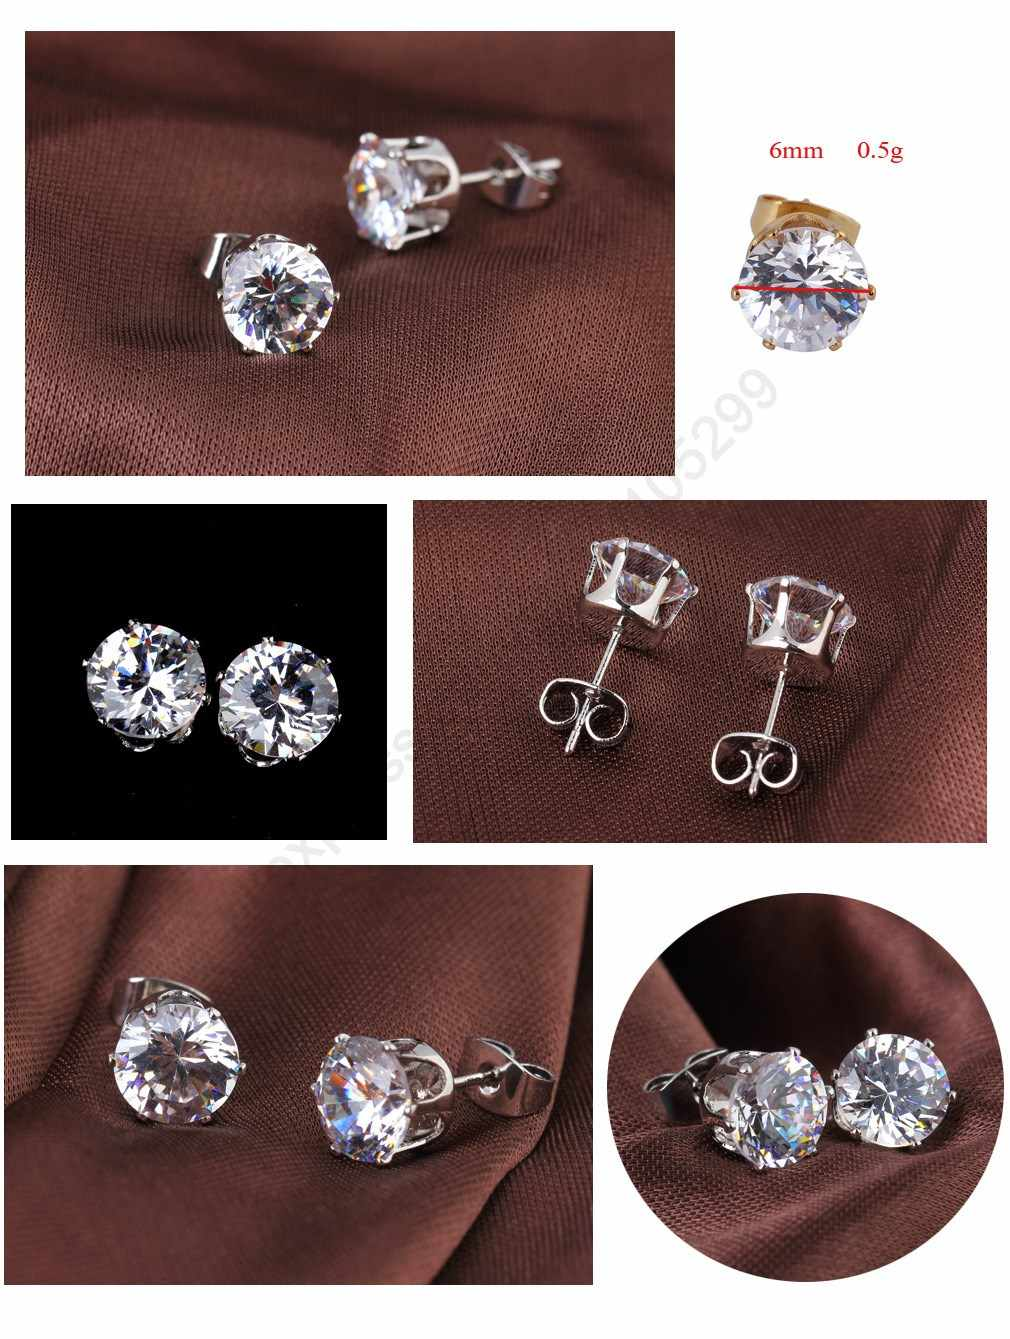 Summer Simple Anti-Allergic 925 Sterling Silver Stud Earrings Jewelry Cubic Zirconia Stone Crystal Brincos For Girls Women